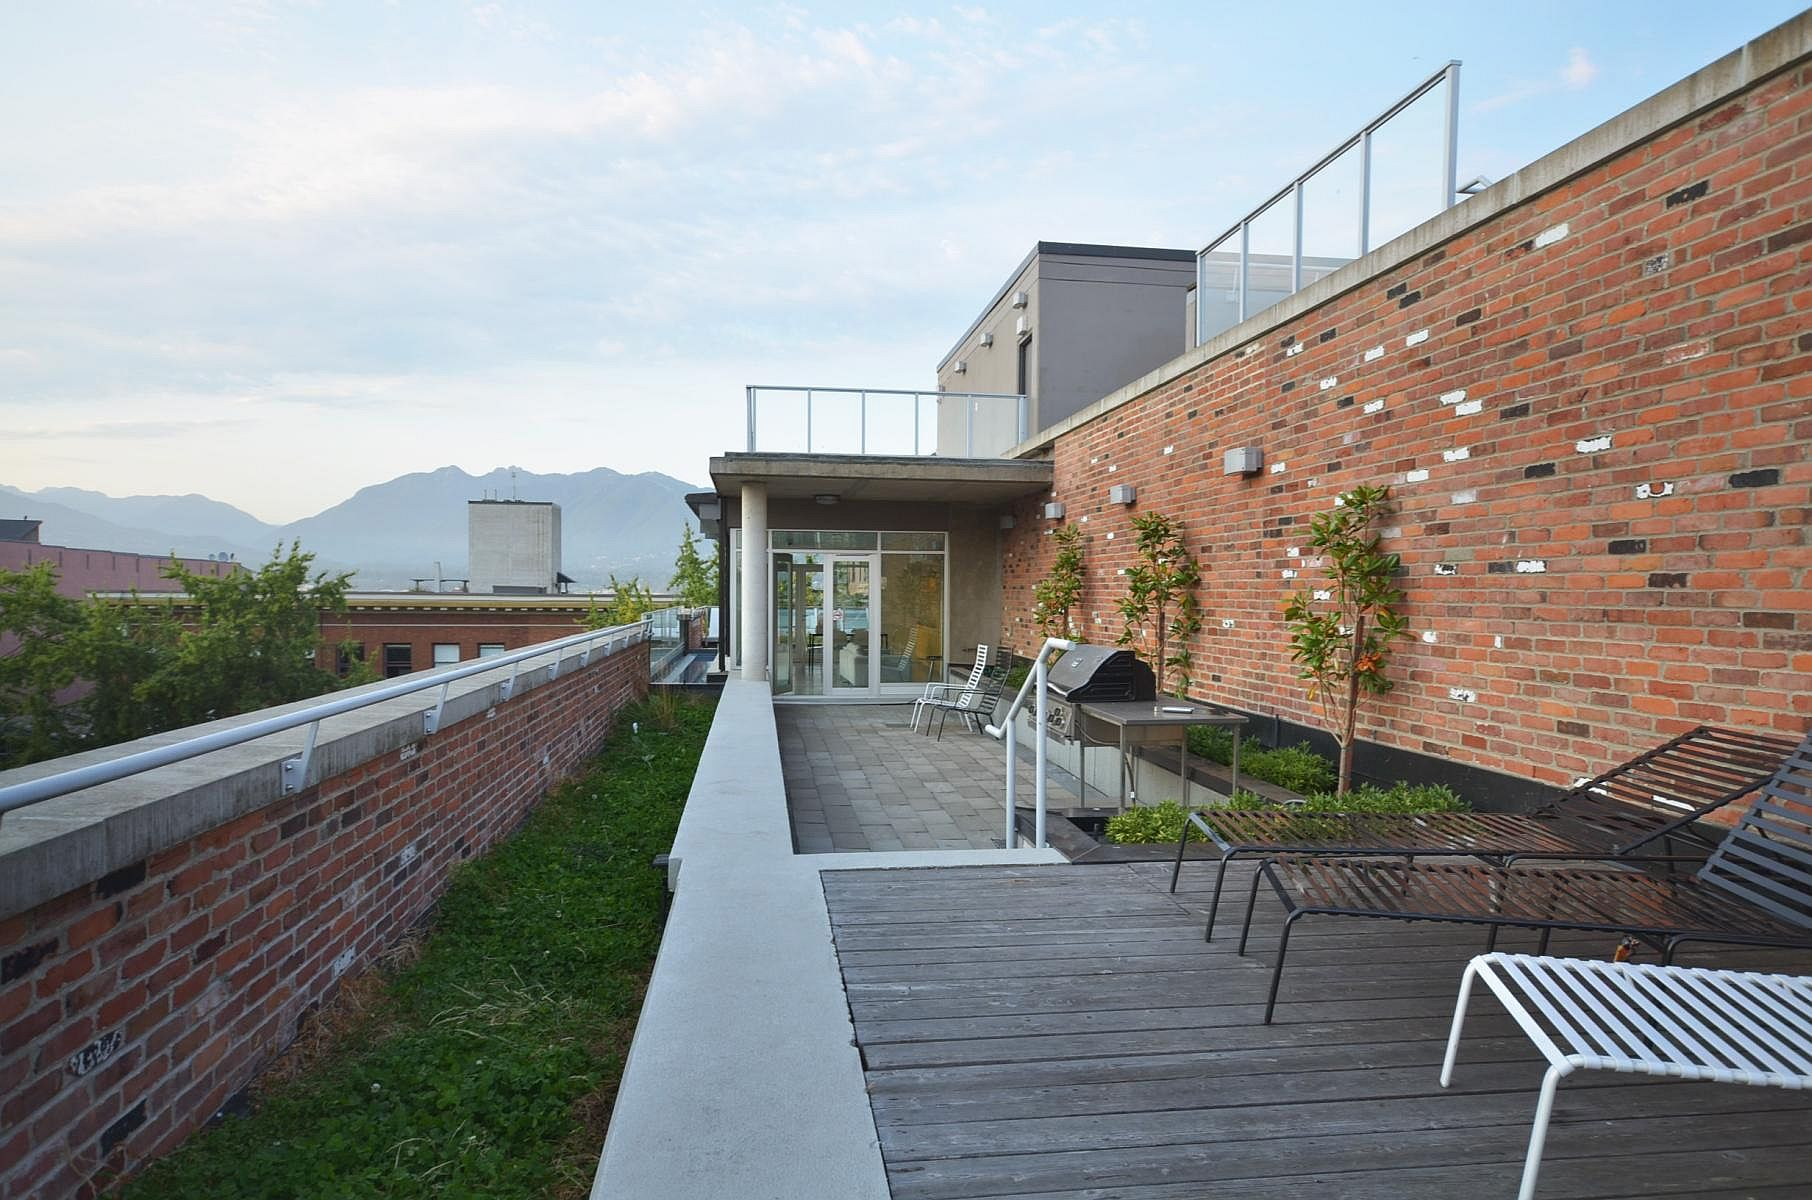 Terrace with a relaxing hangout and a view of Vancouver